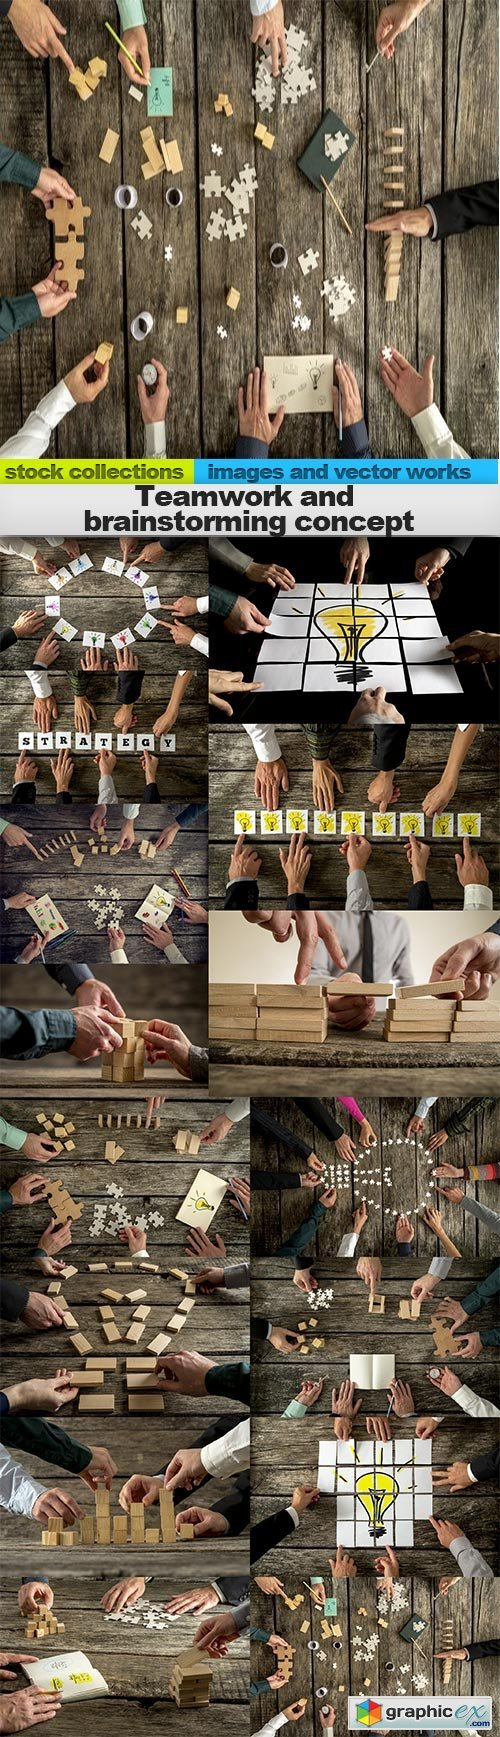 Teamwork and brainstorming concept, 15 x UHQ JPEG